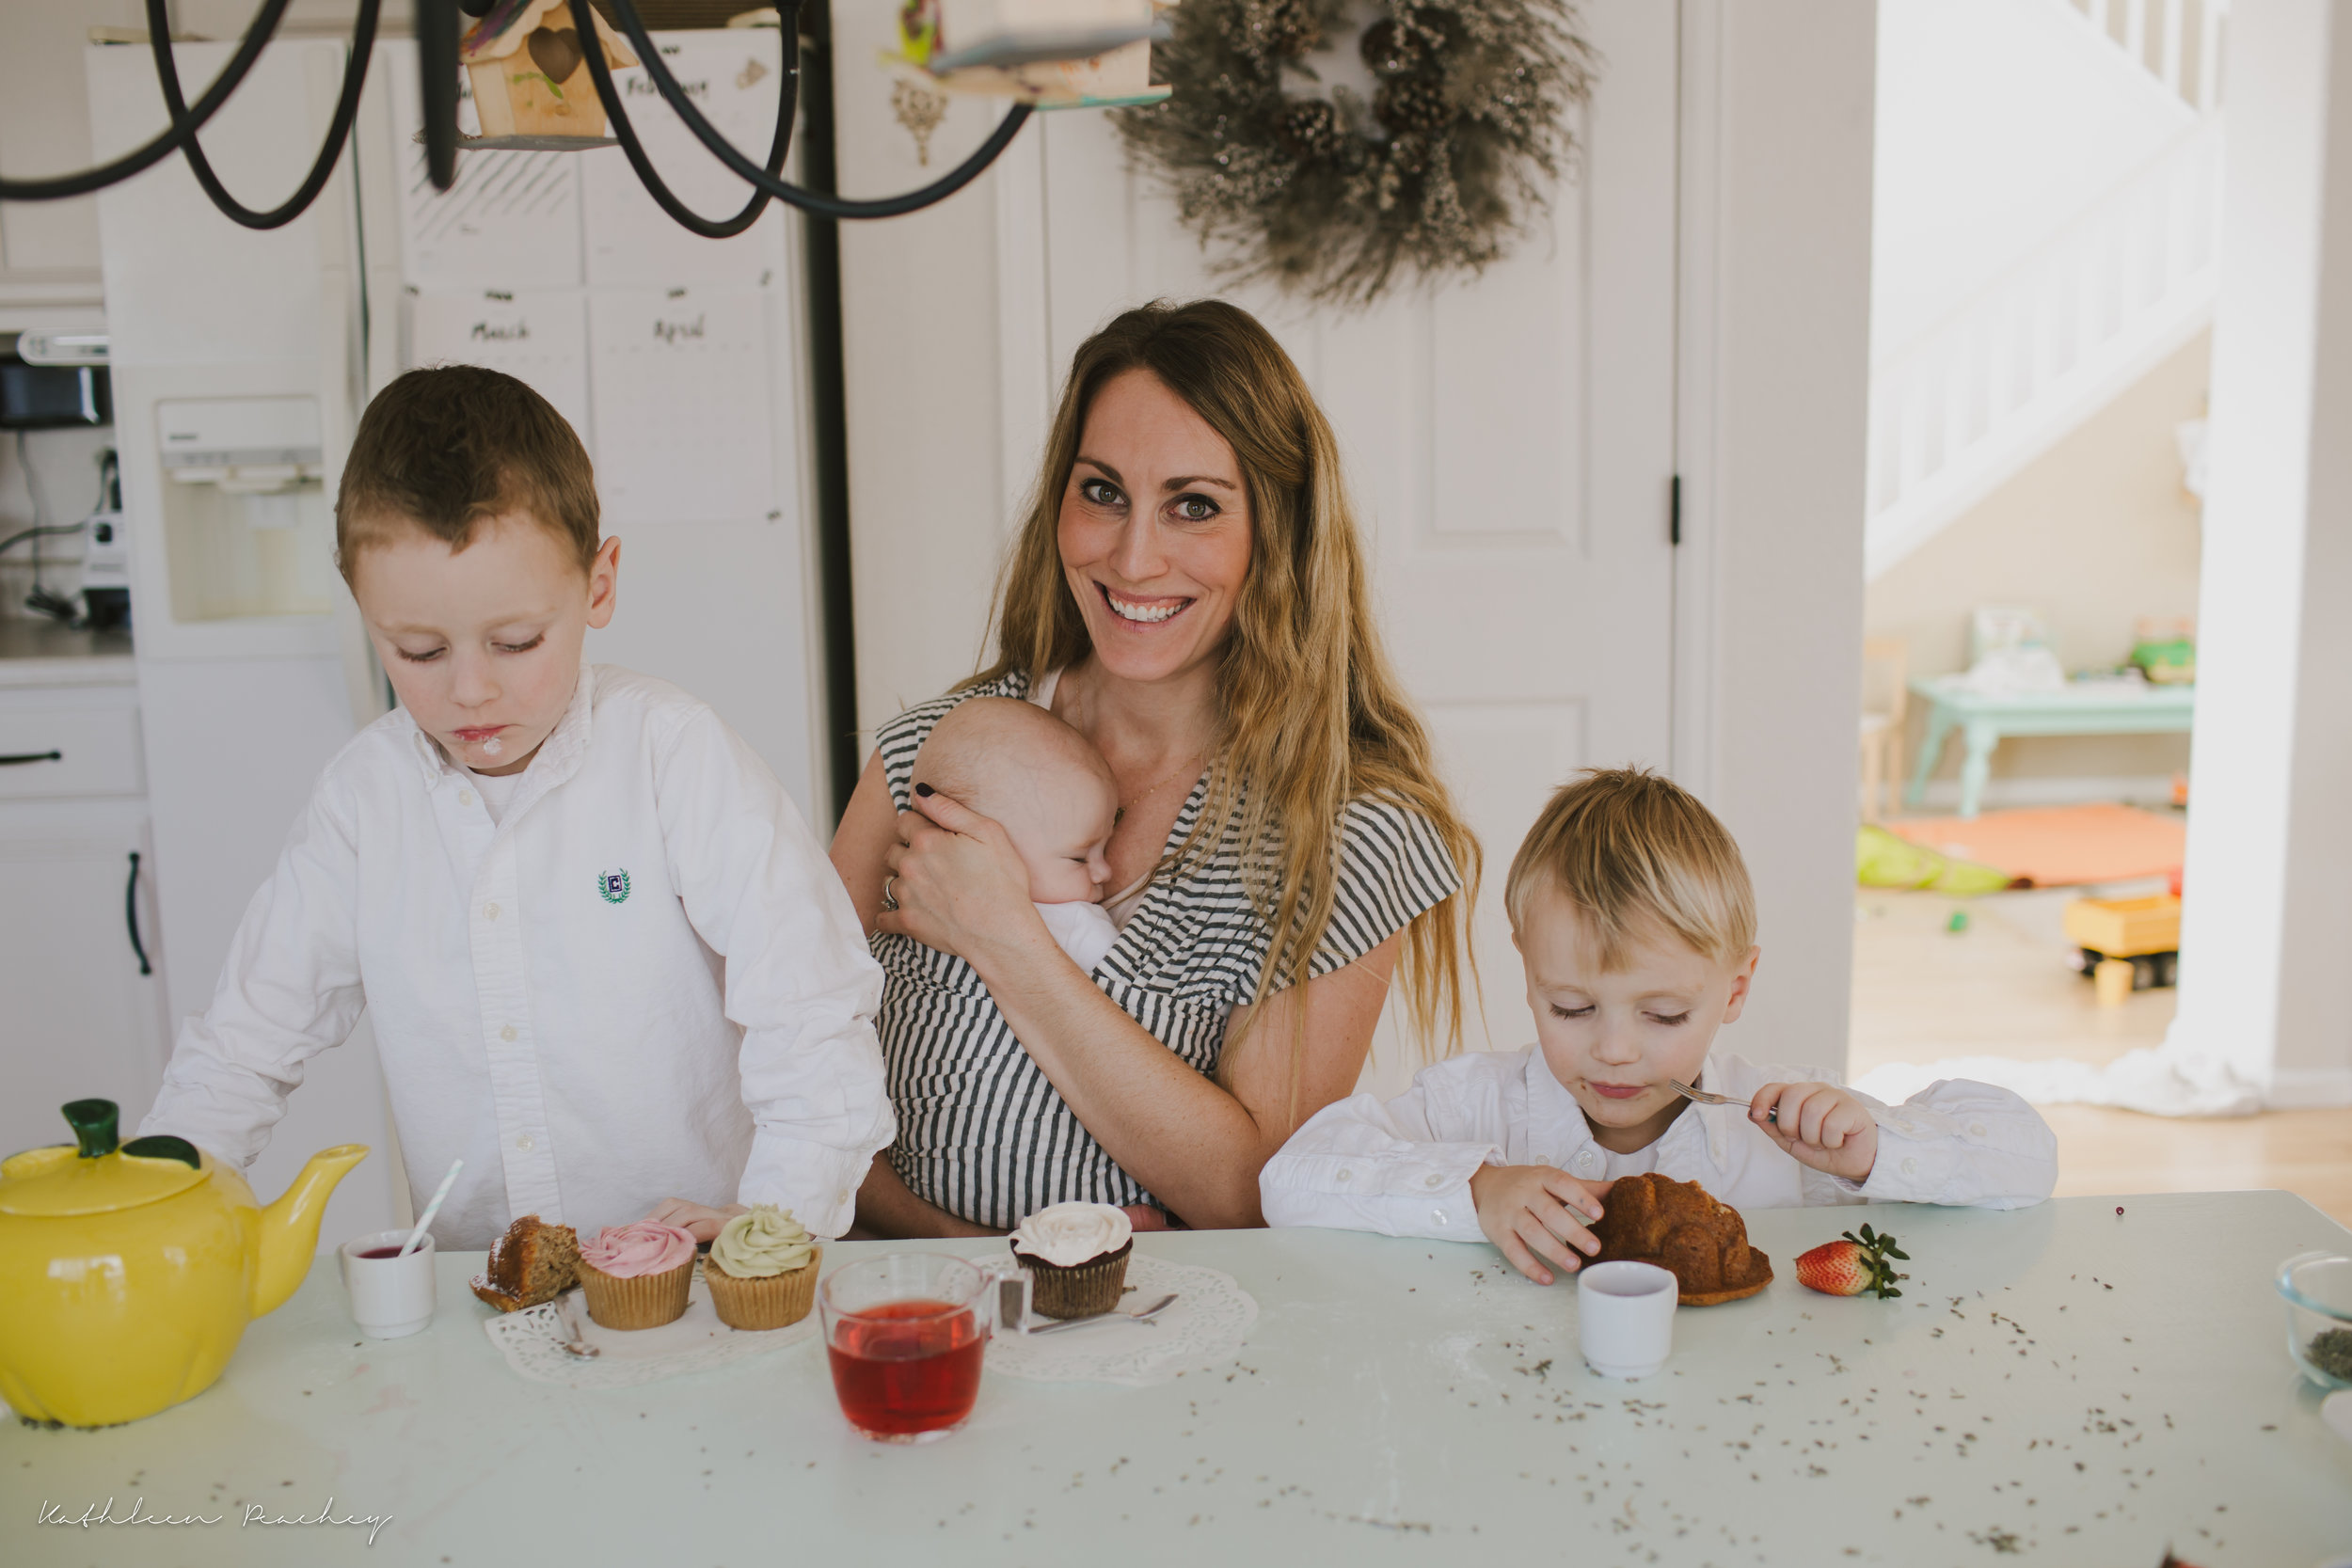 kathleen peachey photography lifestyle photography